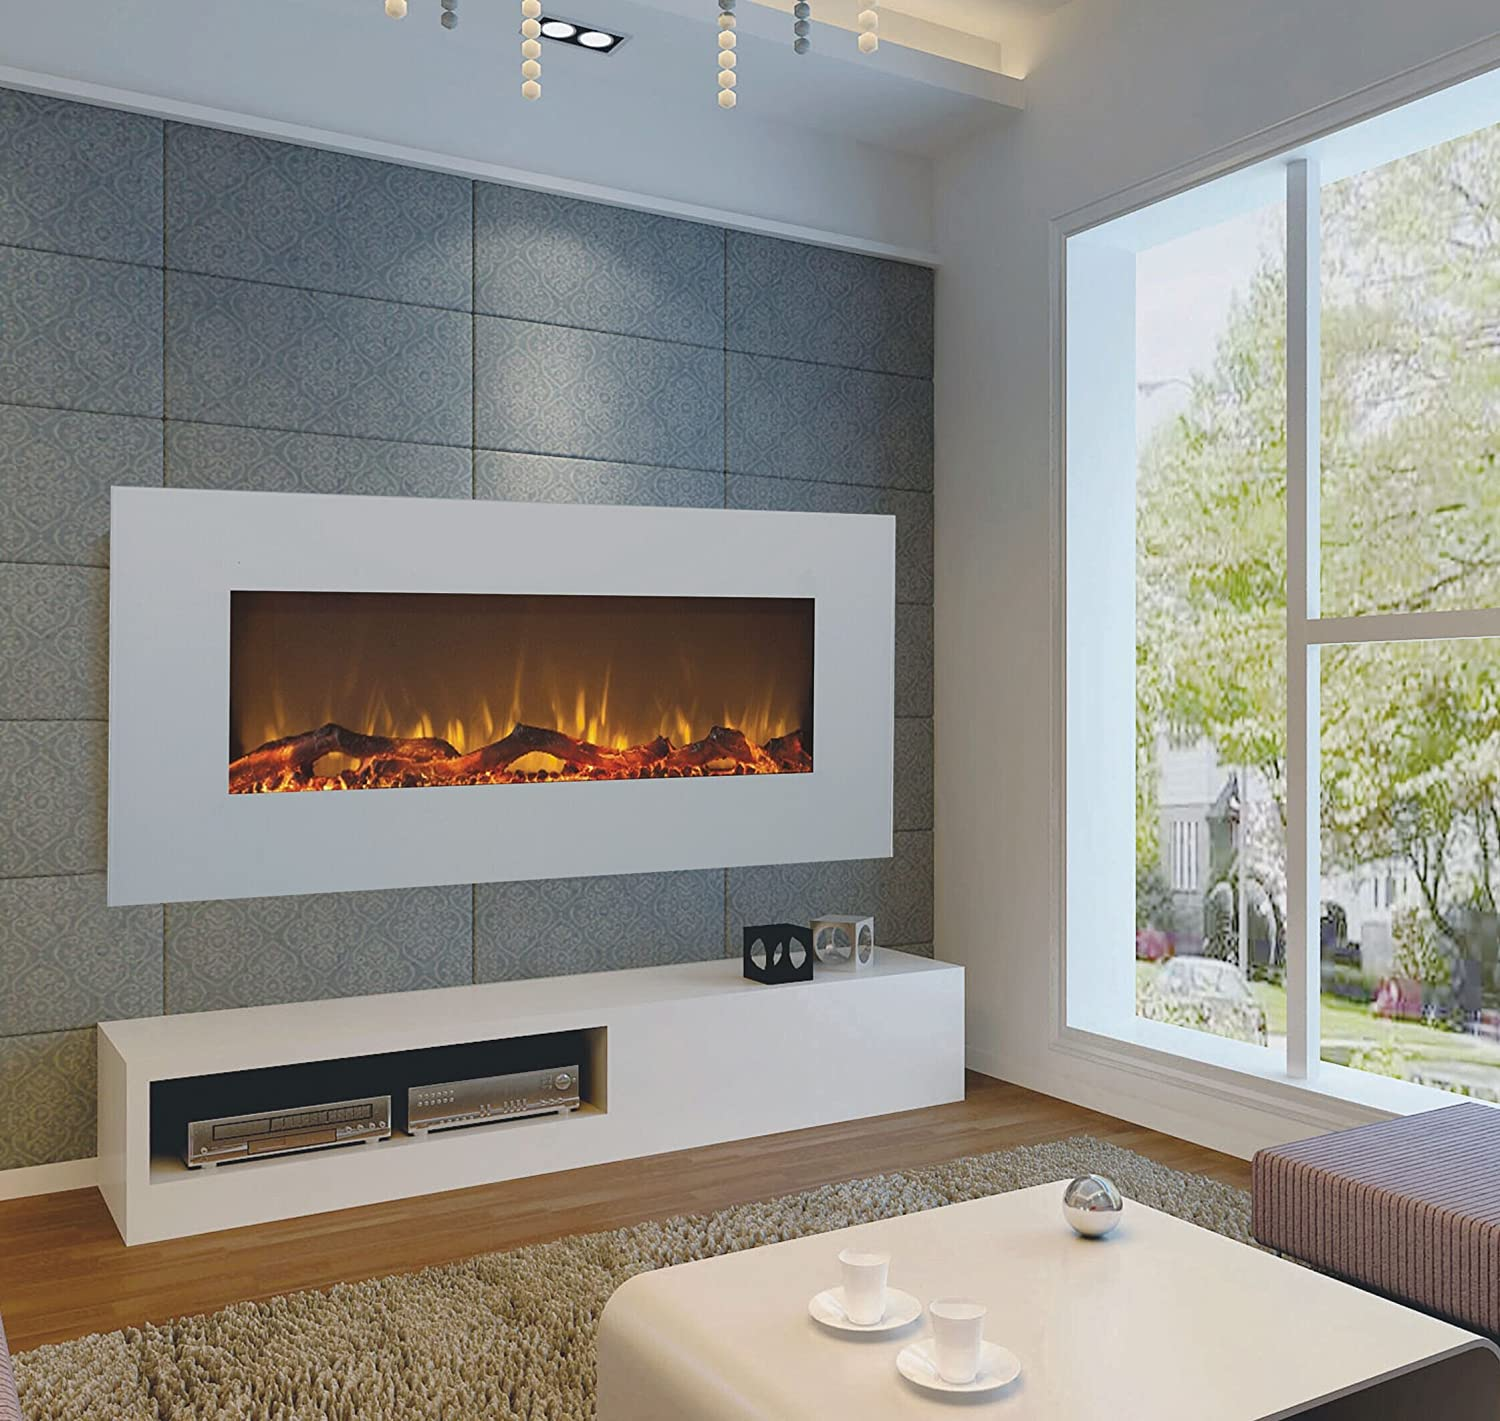 l com home anywhere amazon electric stainless dp fireplace soho wall steel mount kitchen